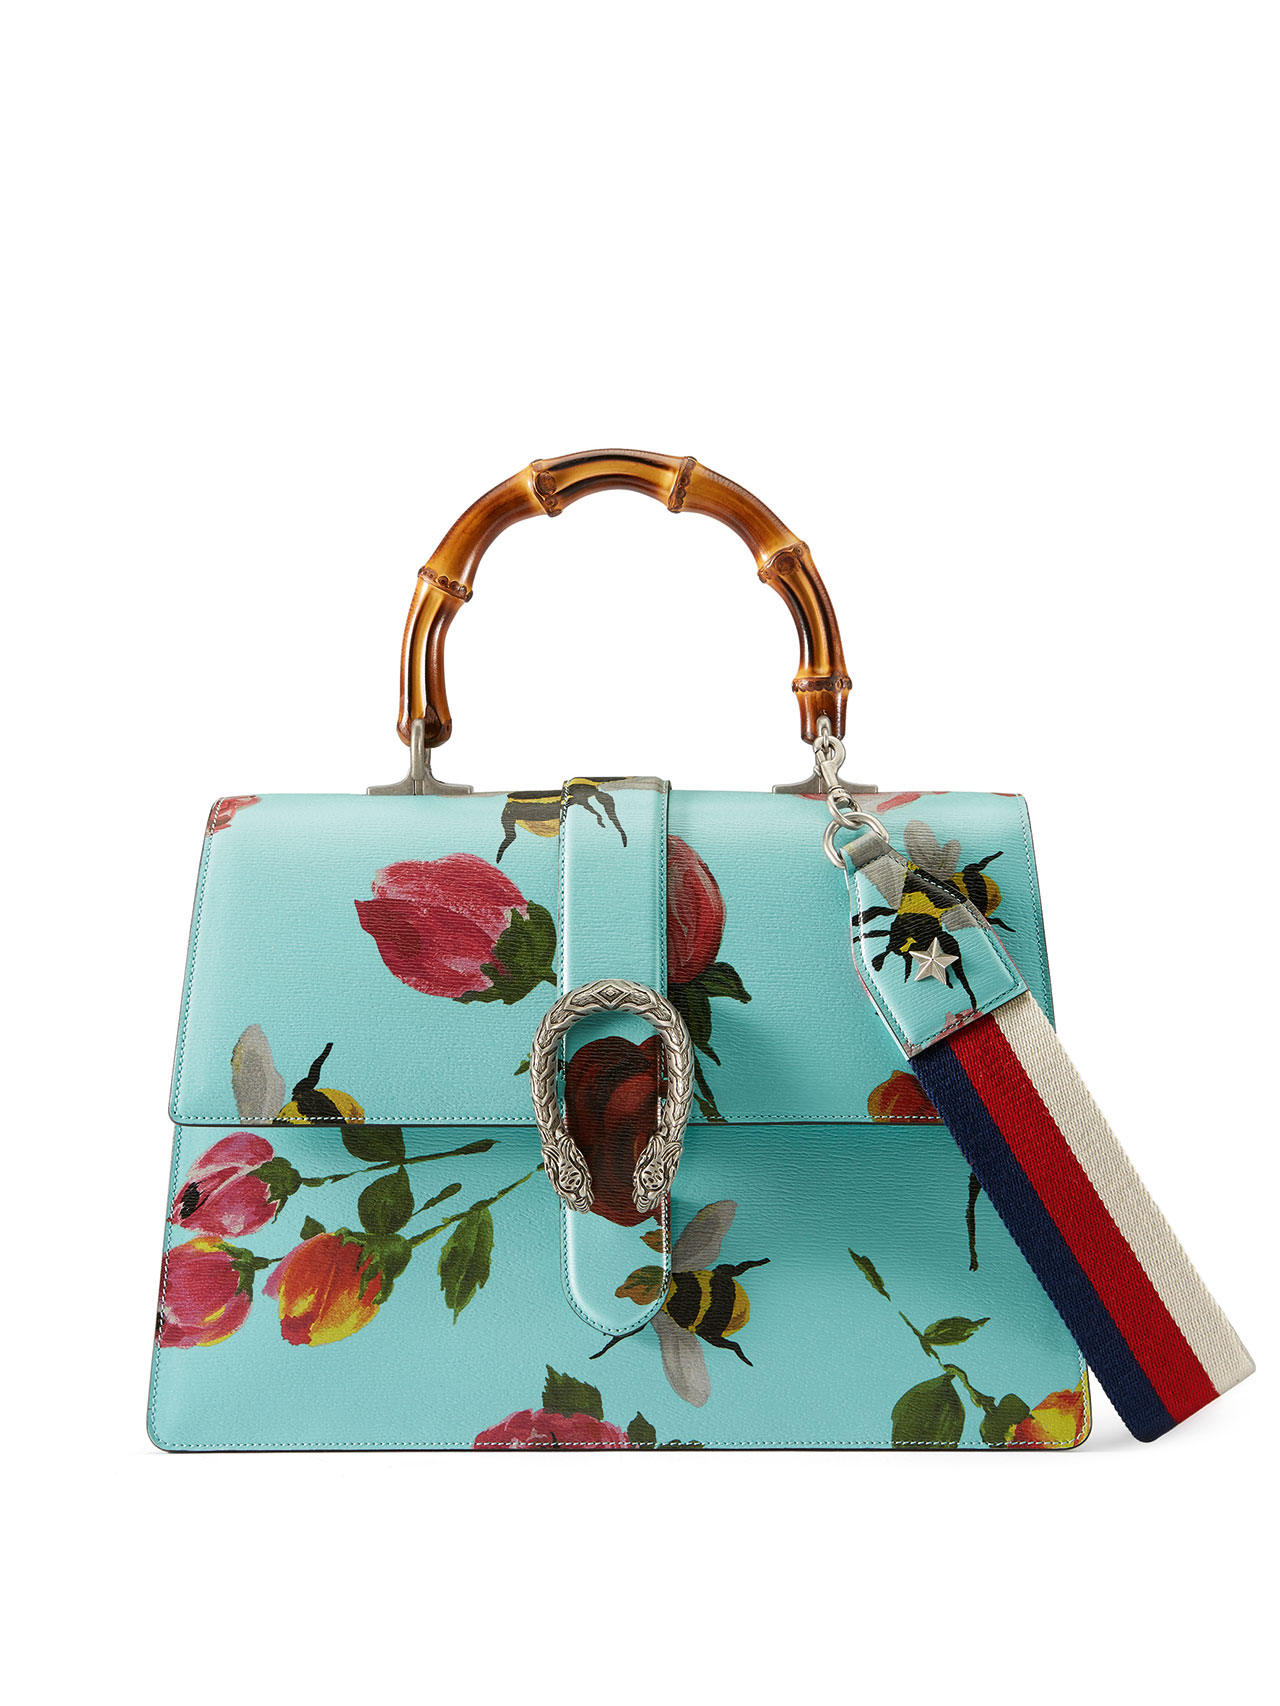 Handbag from the Gucci Garden series. Photo © Gucci.